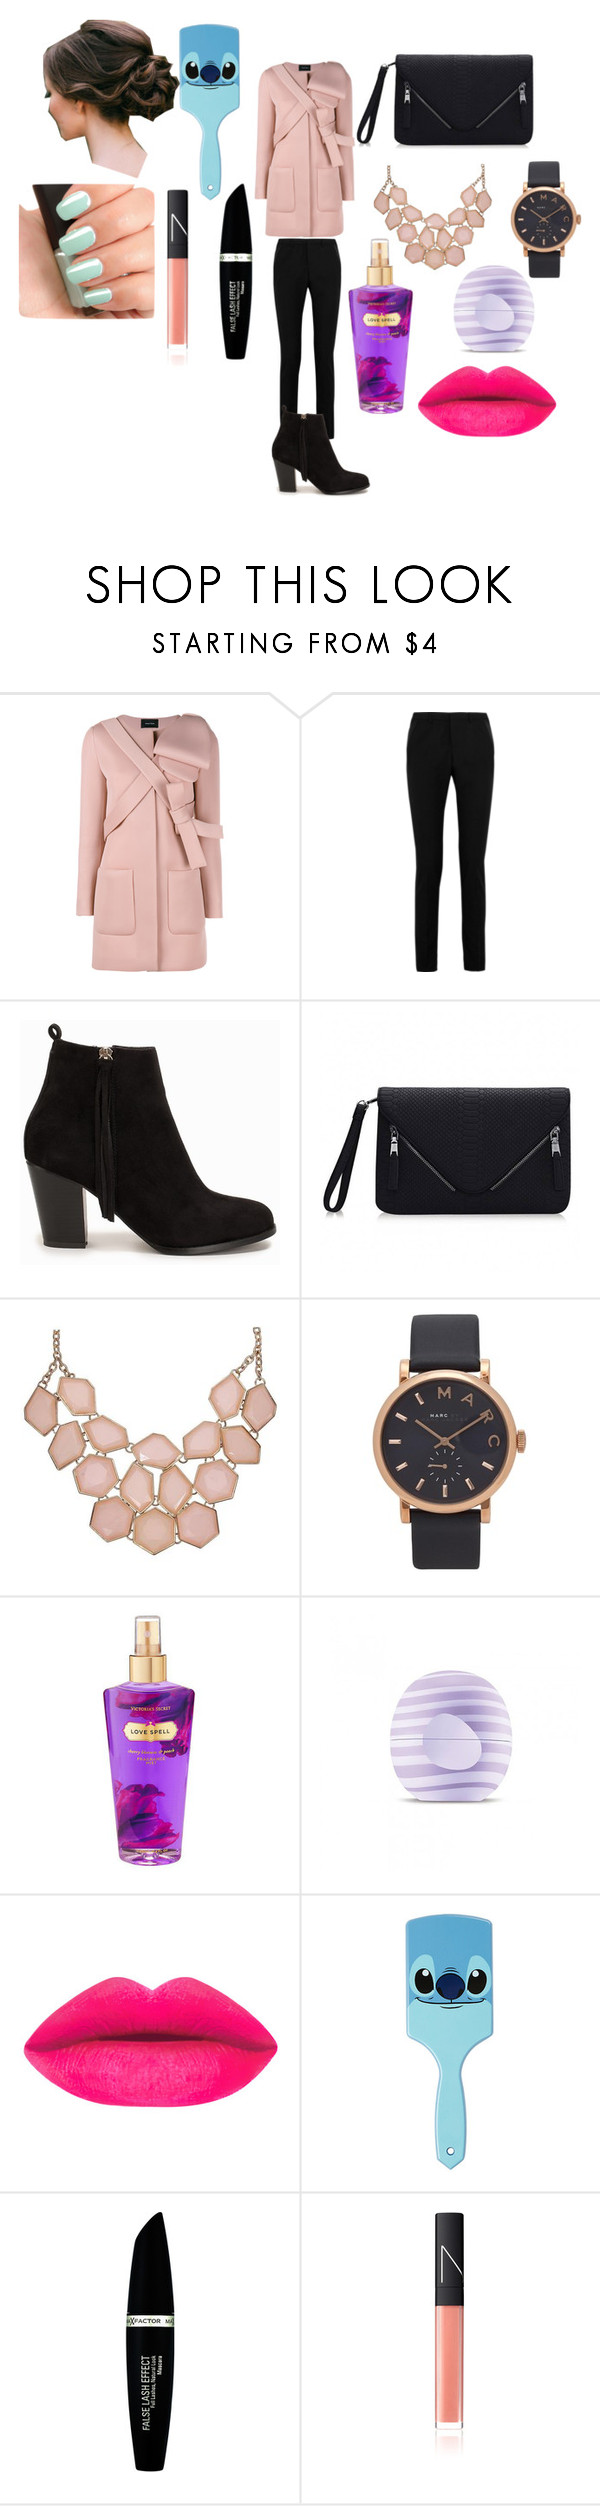 """""""autumn Day"""" by luvaldes on Polyvore featuring Simone Rocha, Yves Saint Laurent, Nly Shoes, Marc by Marc Jacobs, Victoria's Secret, Eos, Disney, NARS Cosmetics and Max Factor"""